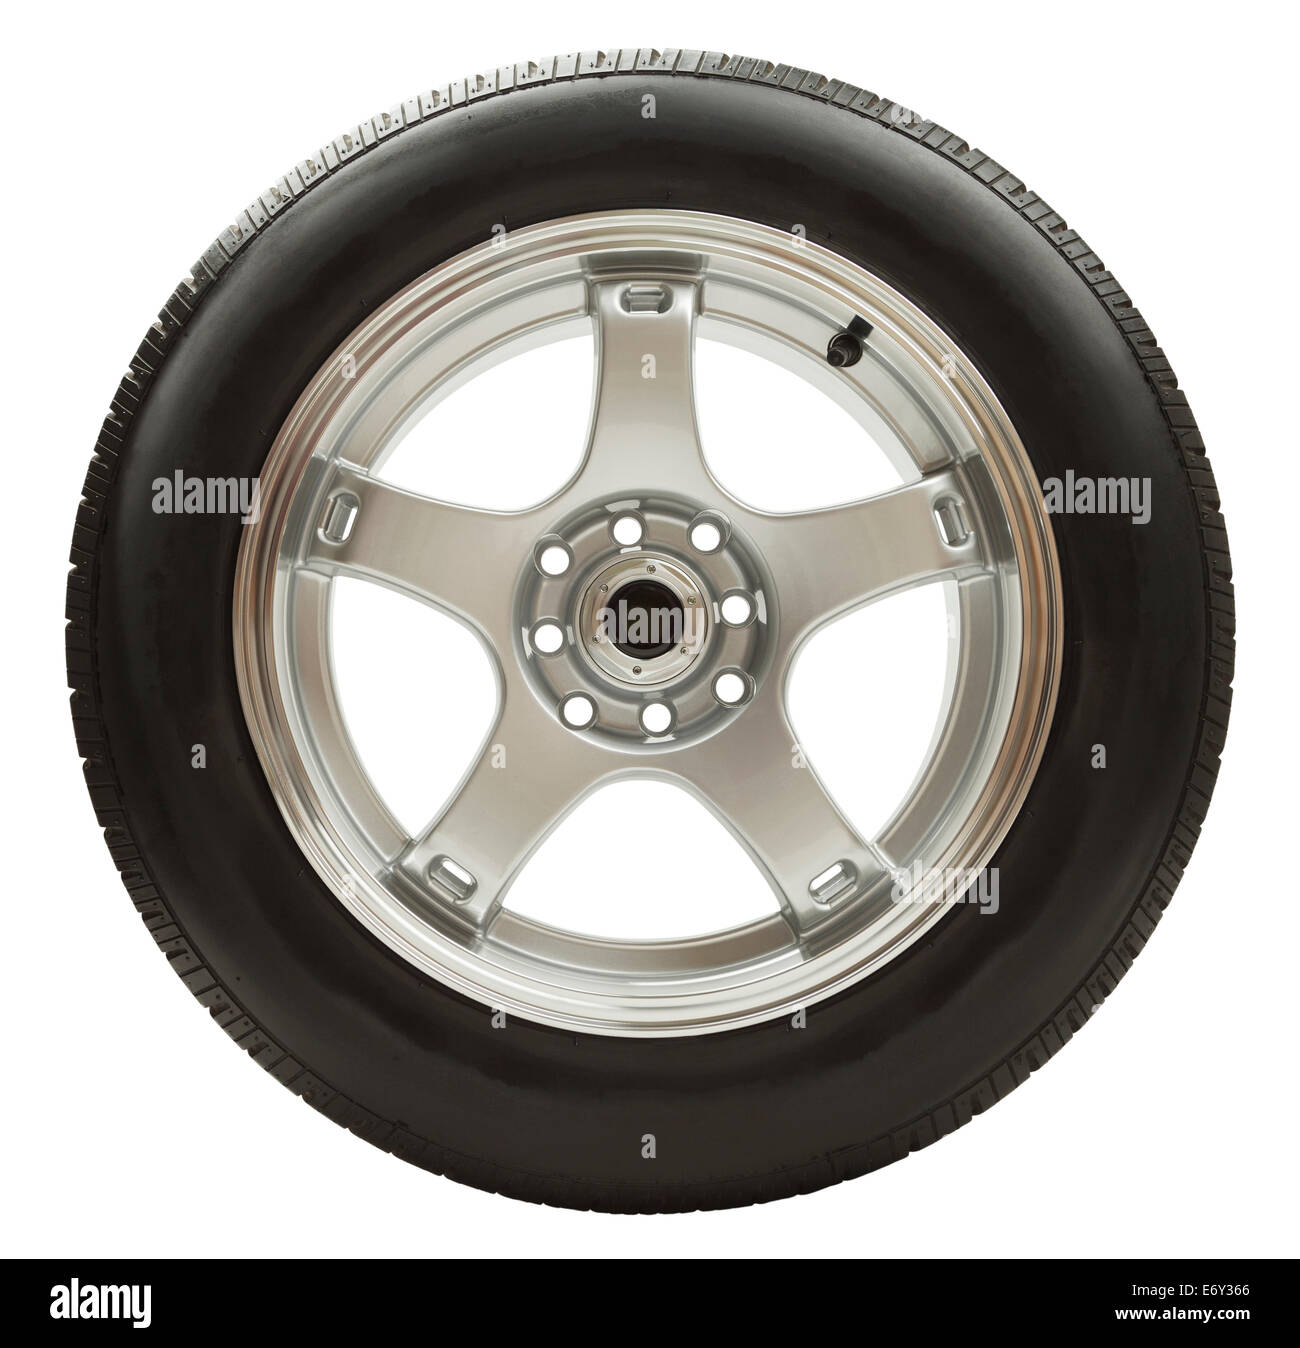 Rubber Car Wheel with Chrome Rim Isolated on White Background. - Stock Image